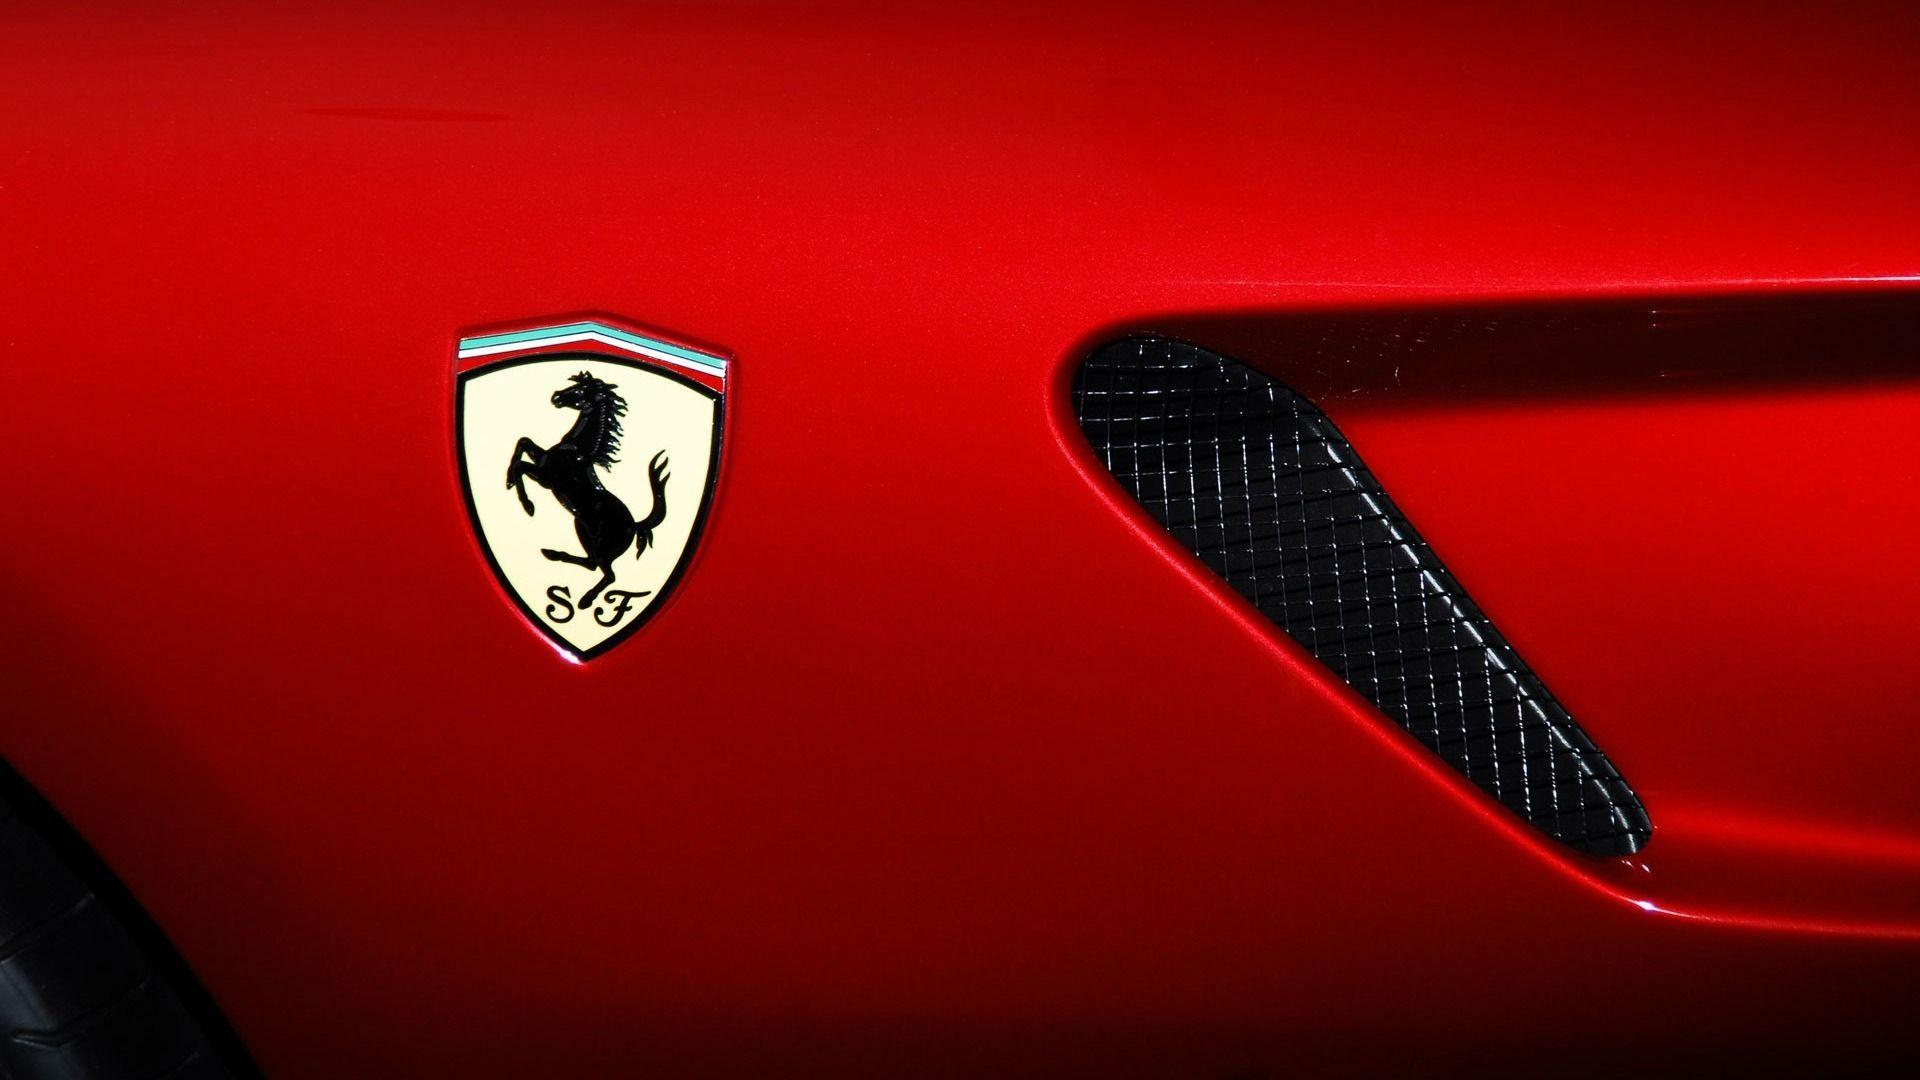 Ferrari Wallpapers Hd Iphone 5 Wallpapers